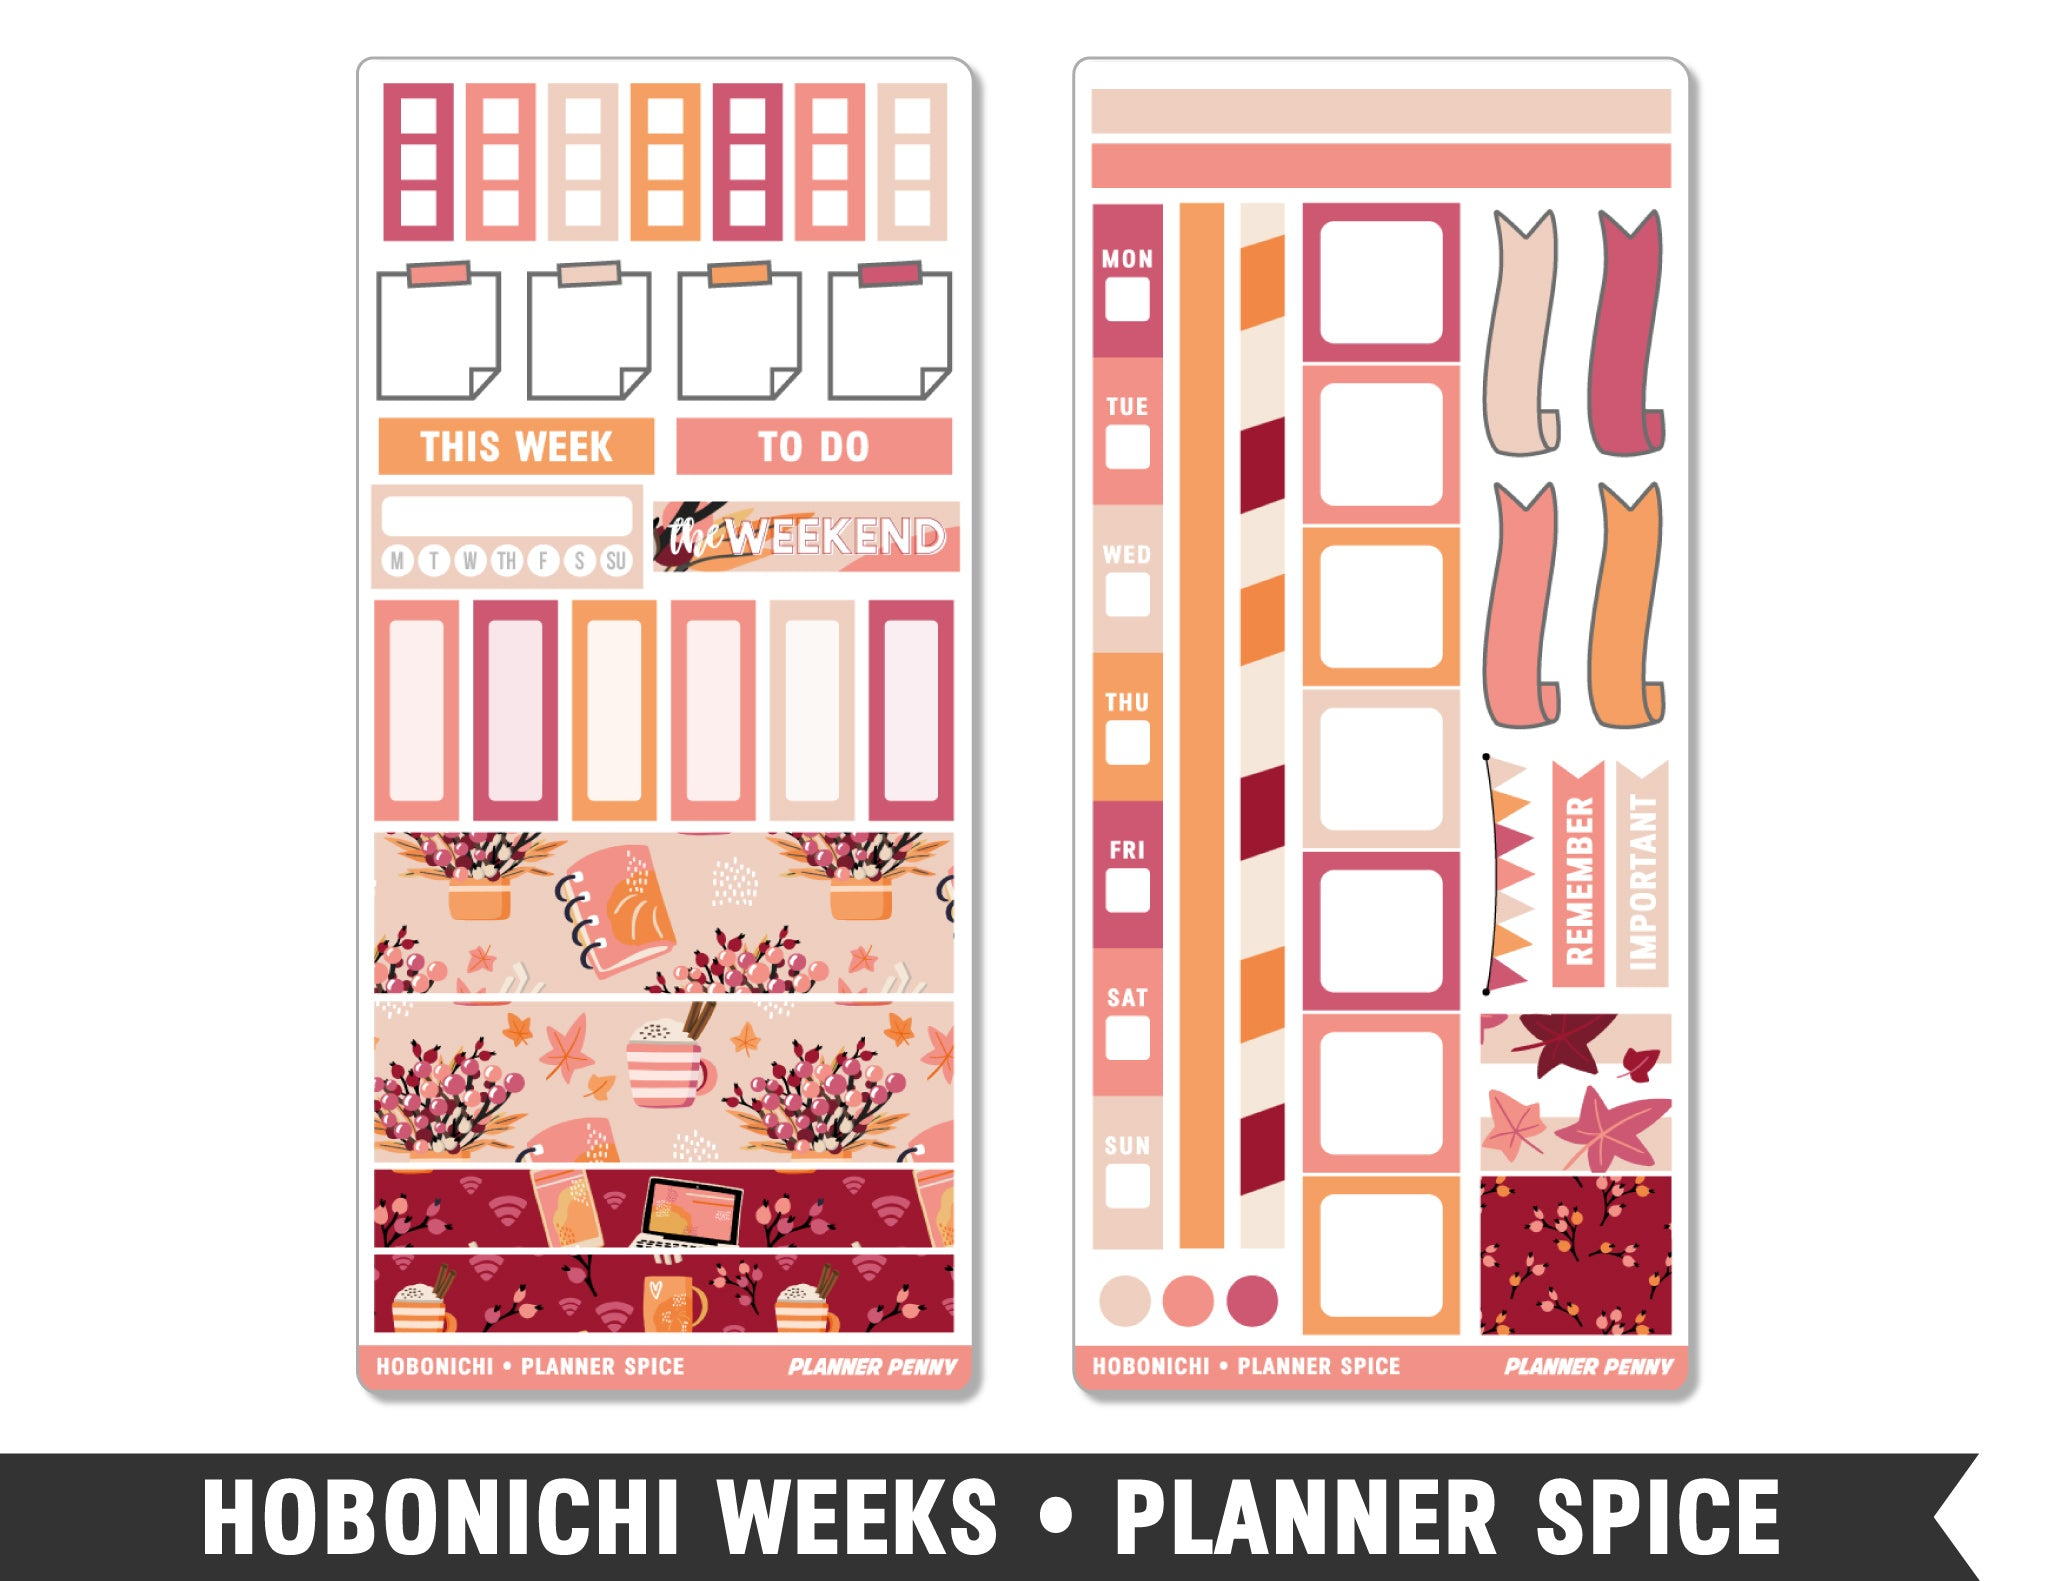 Hobonichi Weeks • Planner Spice • Weekly Spread Planner Stickers - Planner Penny